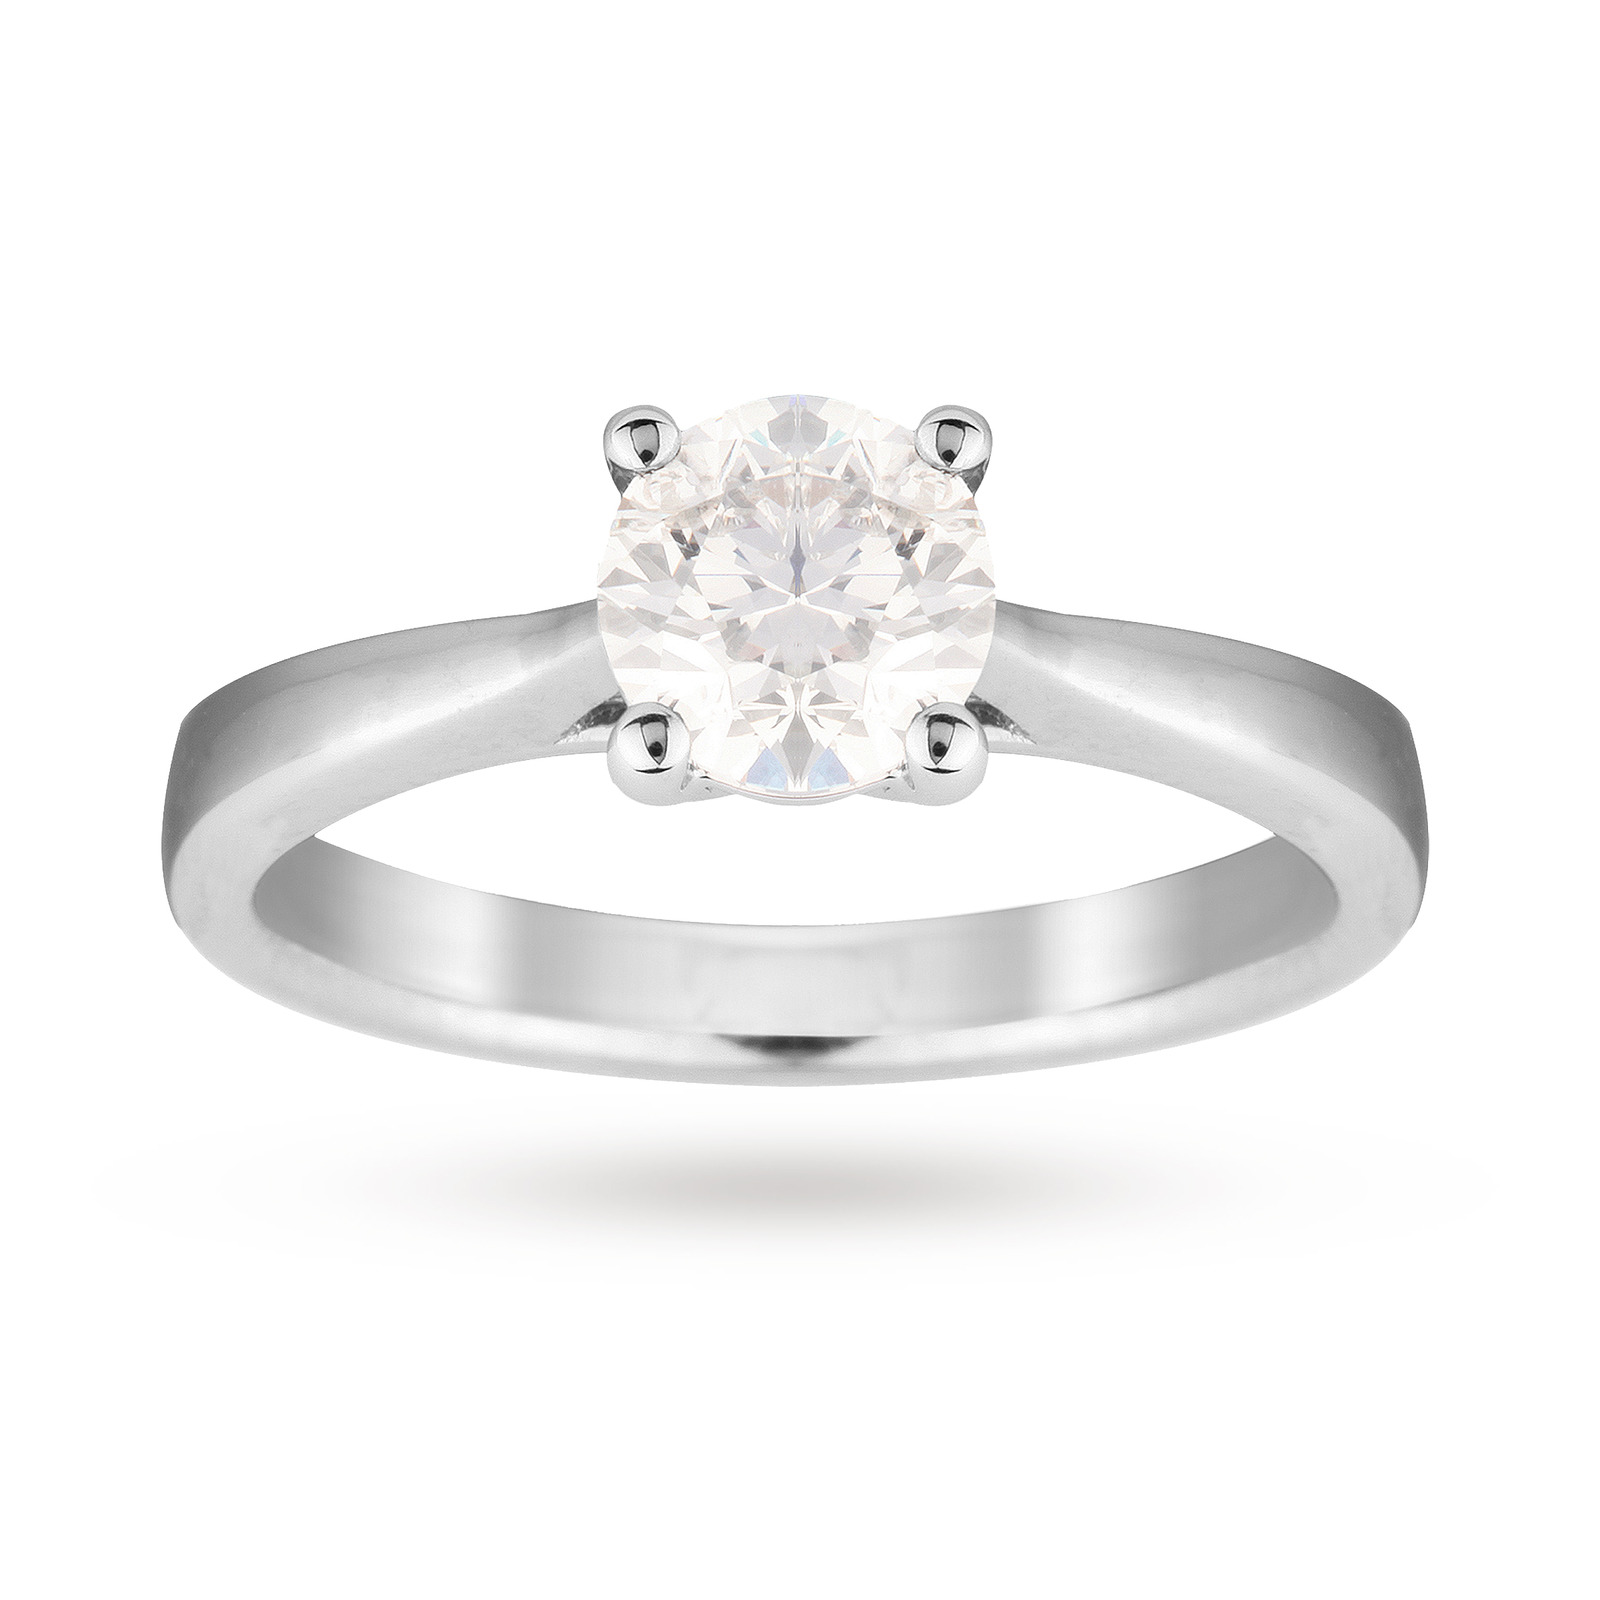 18ct White Gold 1.00 Carat Solitaire Ring - Ring Size J